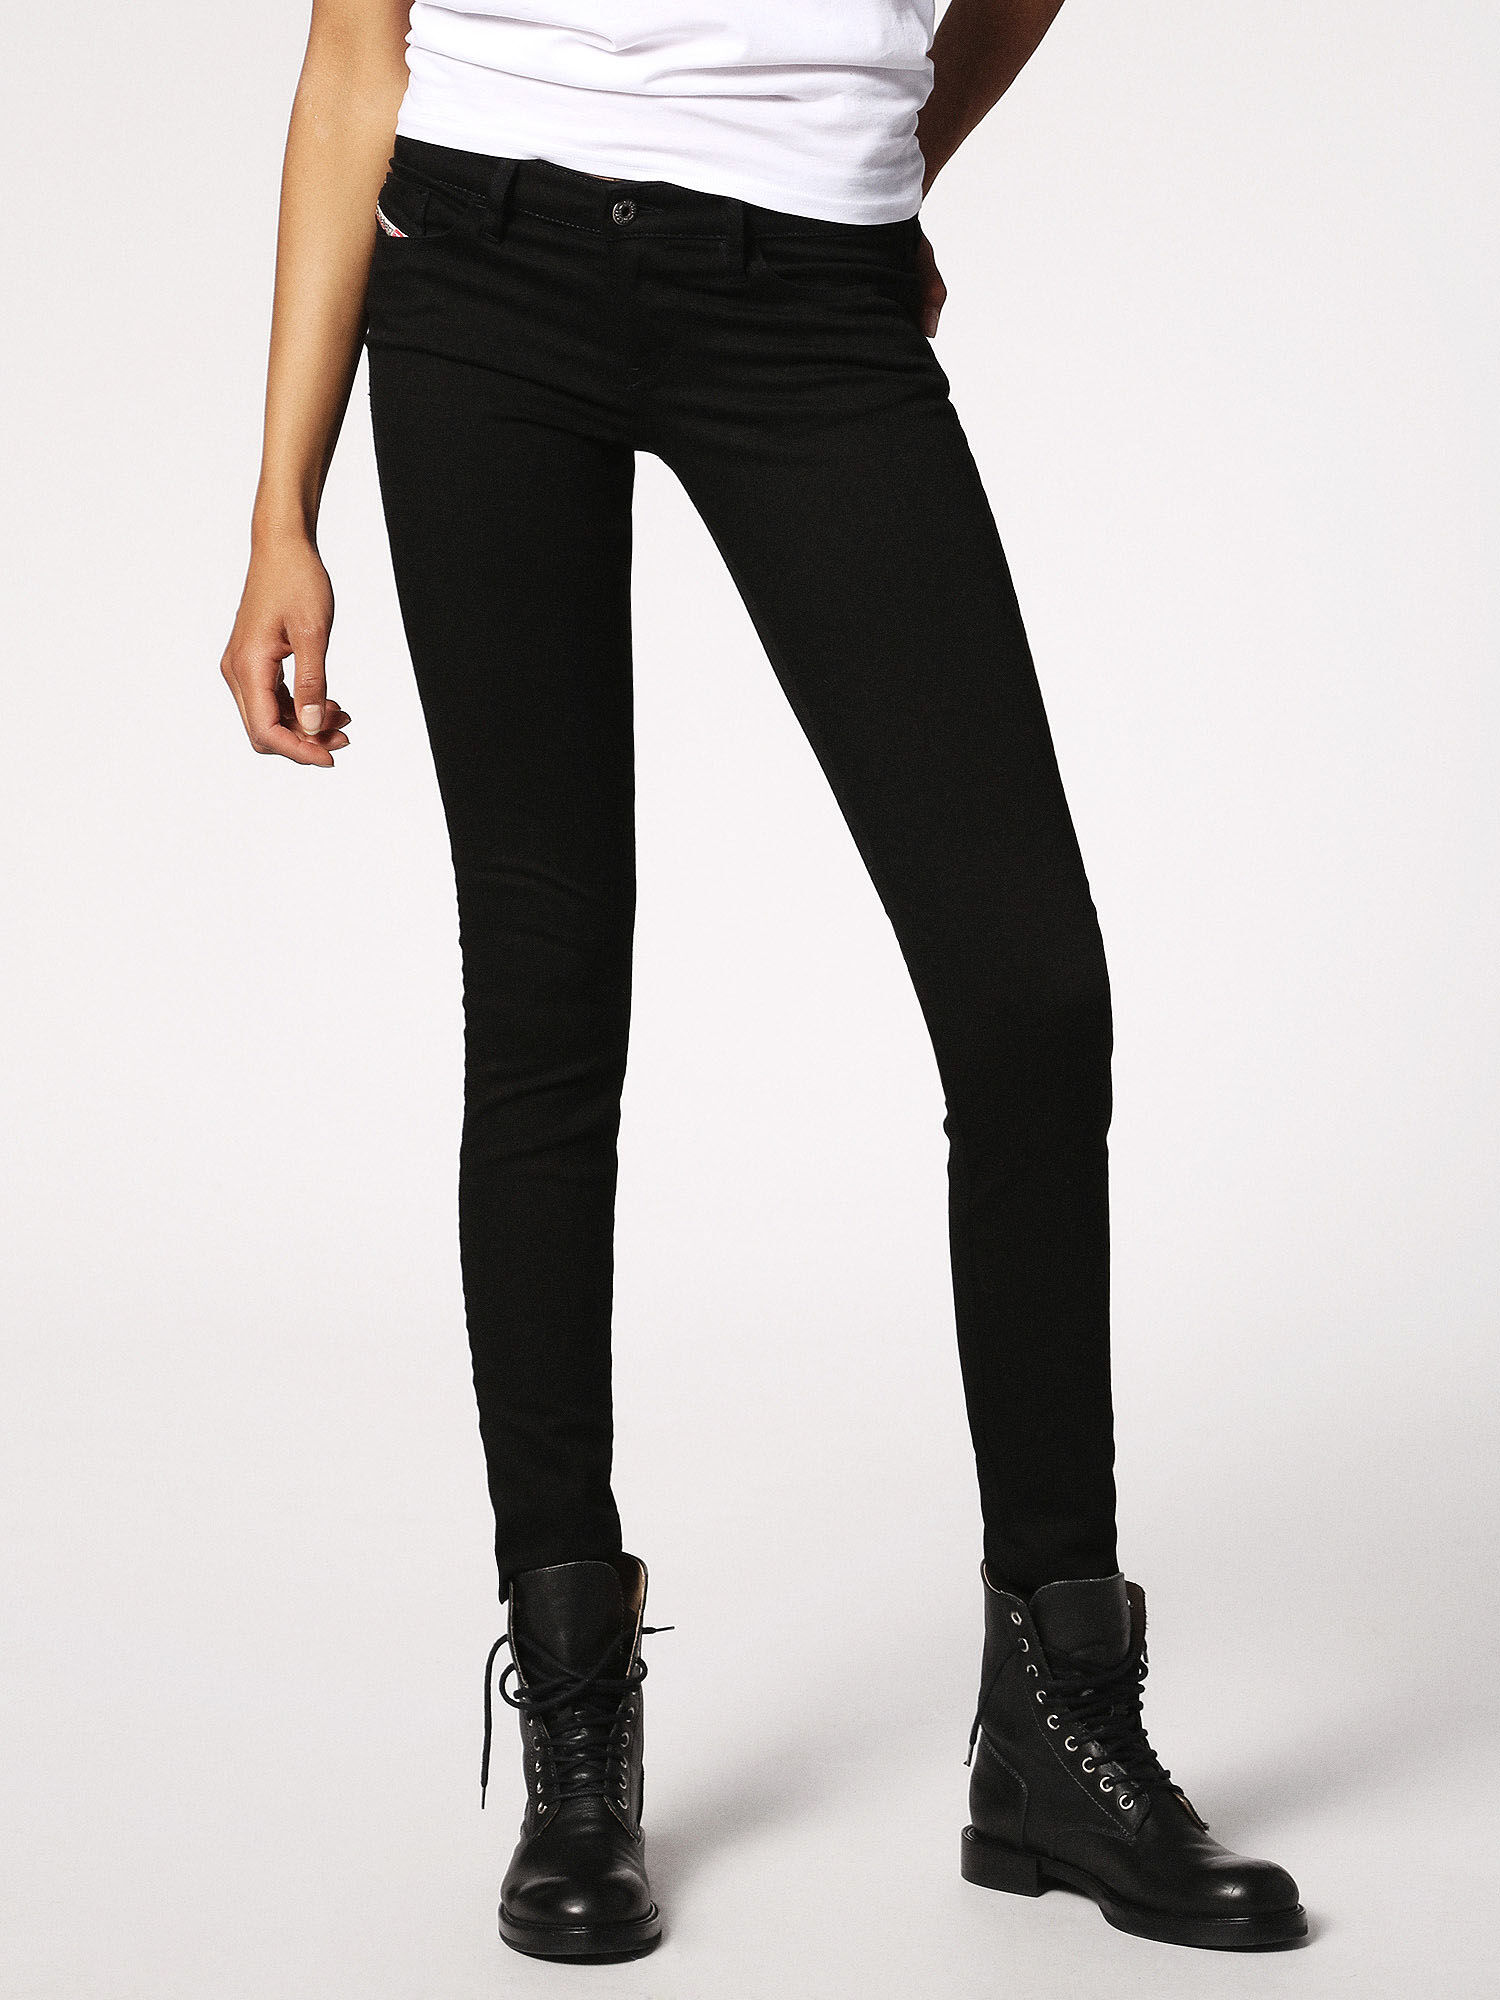 Skinzee-Low 0687G jeans - Black Diesel Quality From China Wholesale QTMk6Sn